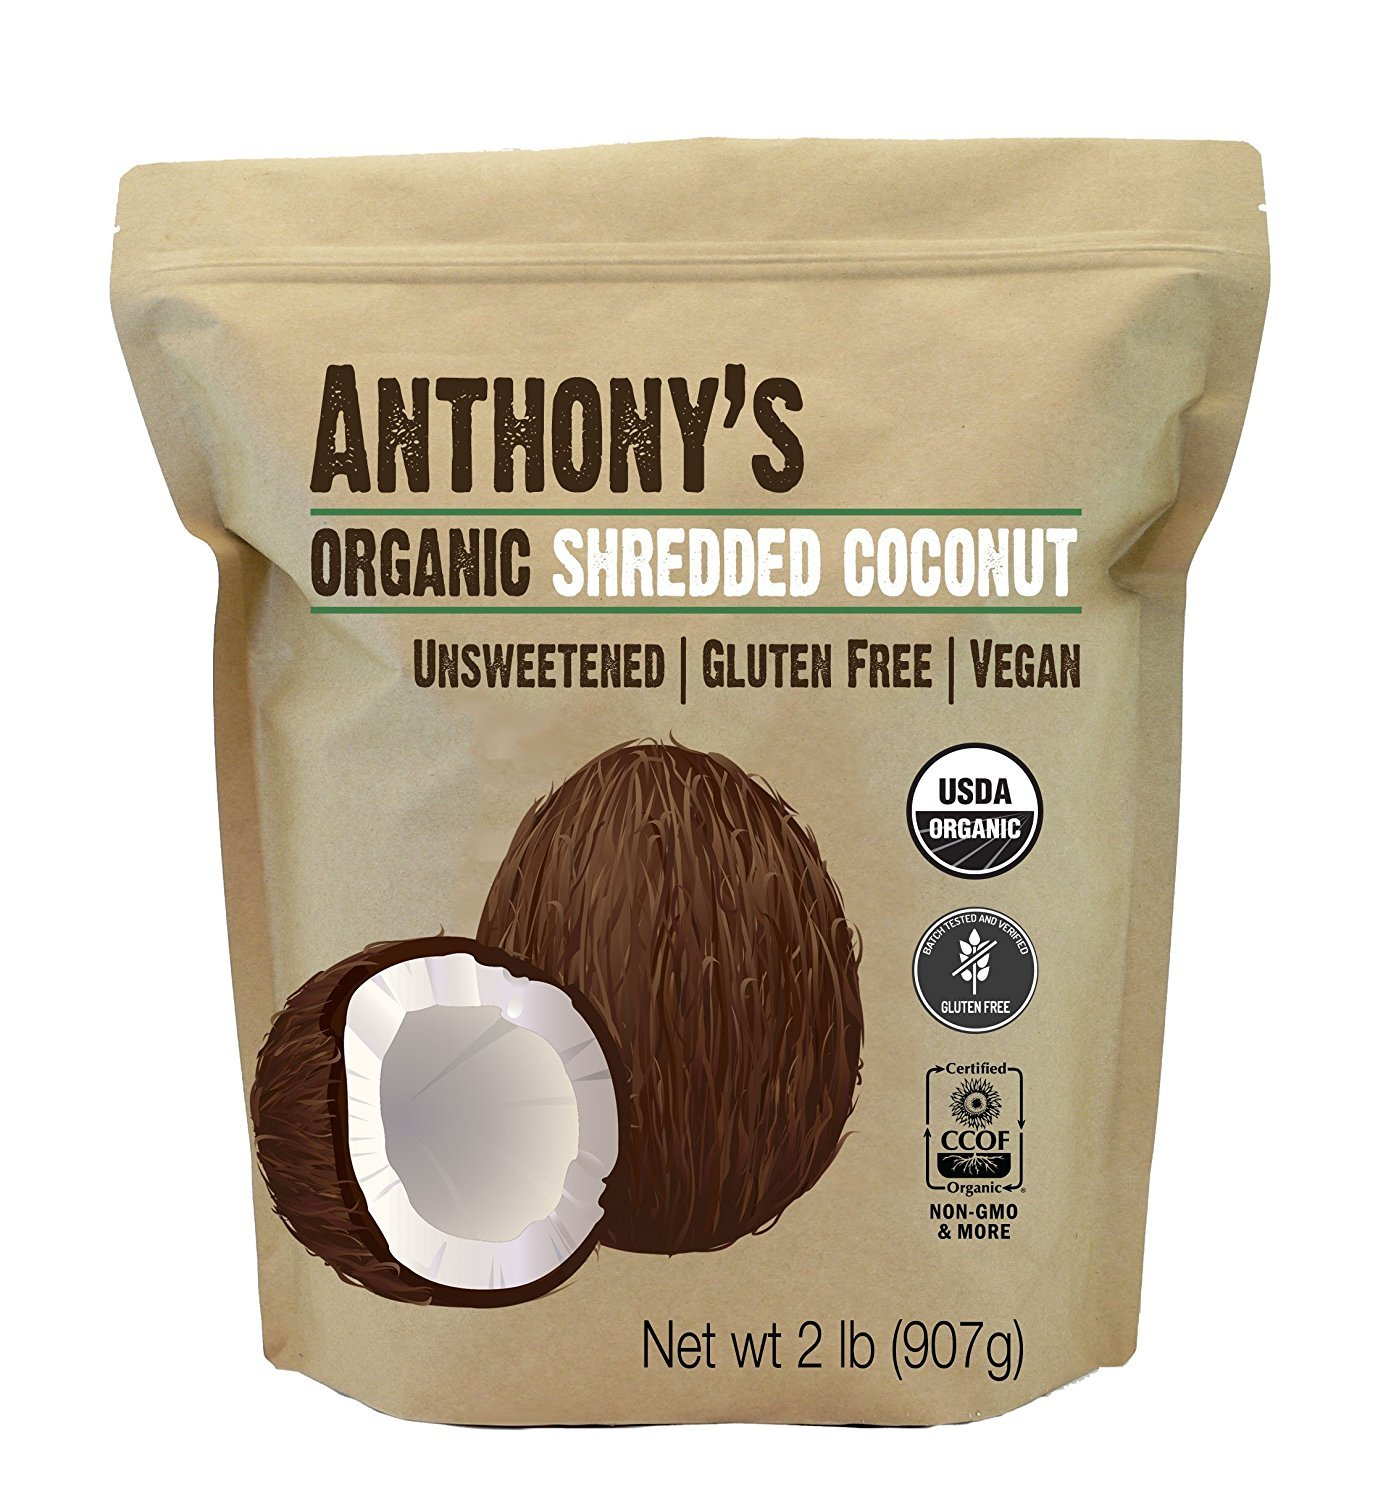 Anthony's Organic Shredded Coconut, 2lb, Unsweetened, Gluten Free, Non GMO, Vegan, Keto Friendly by Anthony's